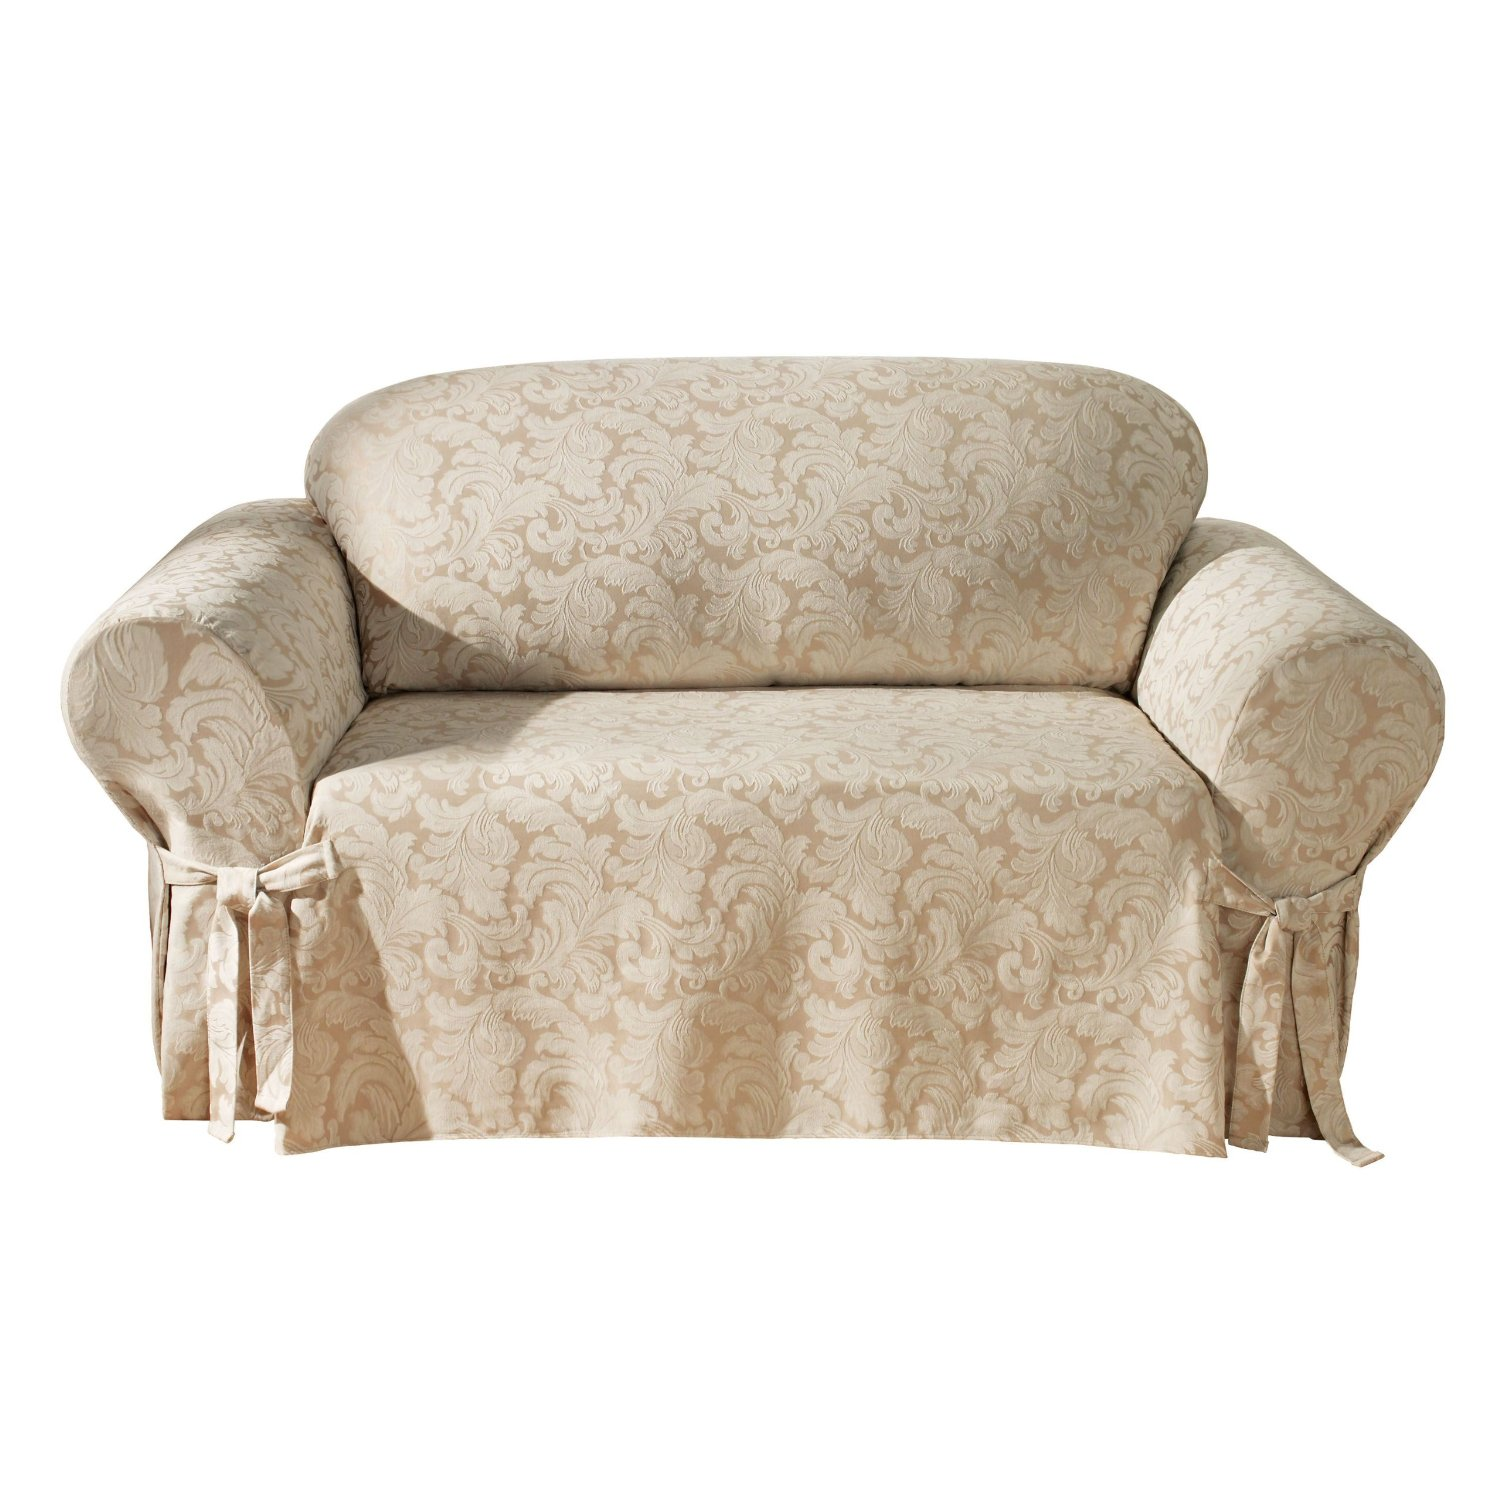 Sofa Slipcovers Large: Furniture: Mesmerizing Oversized Chair Slipcover For Home